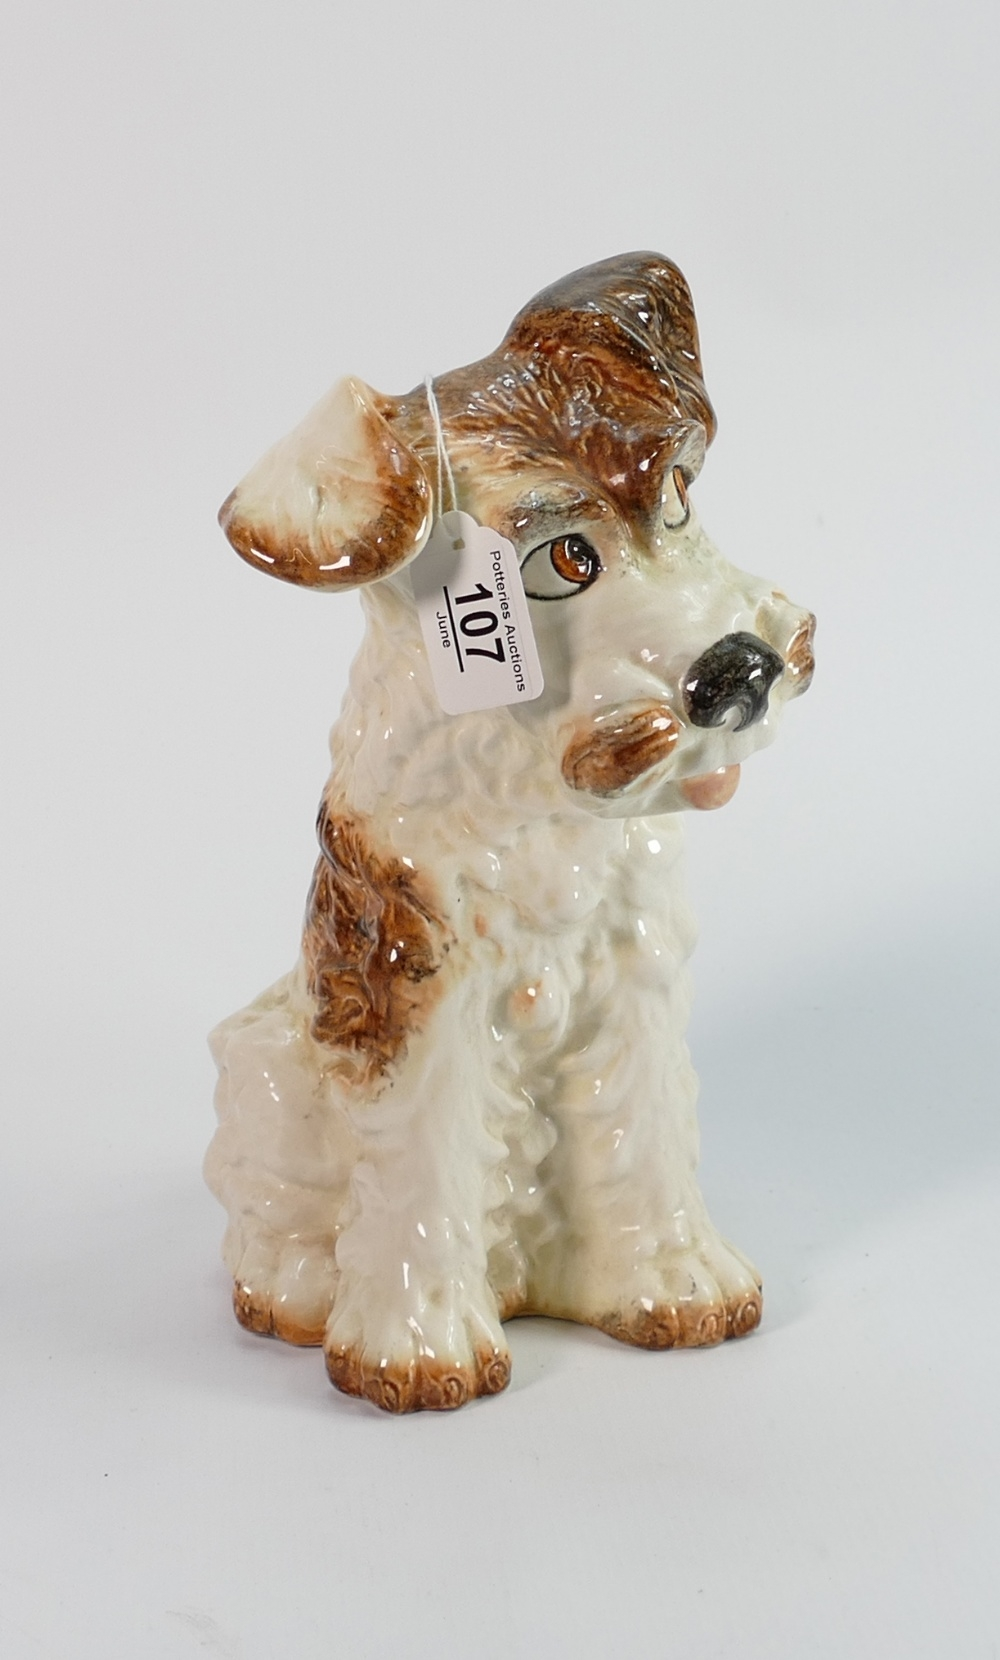 Large Sylvac painted dog ref: 29 cm high ref 1580 or 1380.